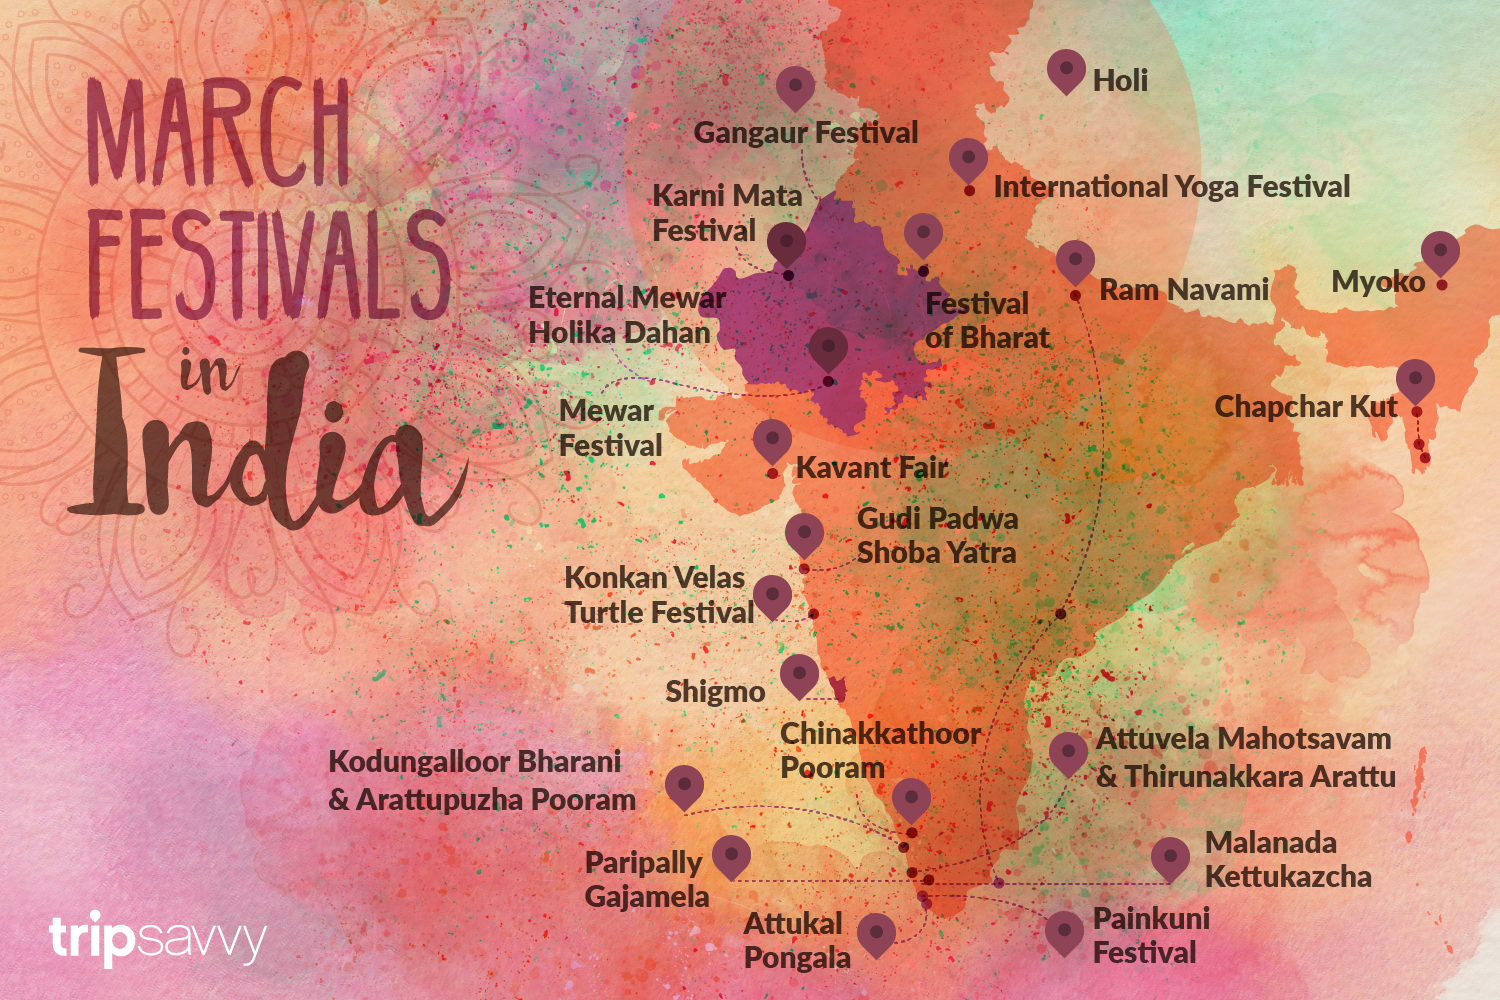 March 2019 India Festivals and Events Guide